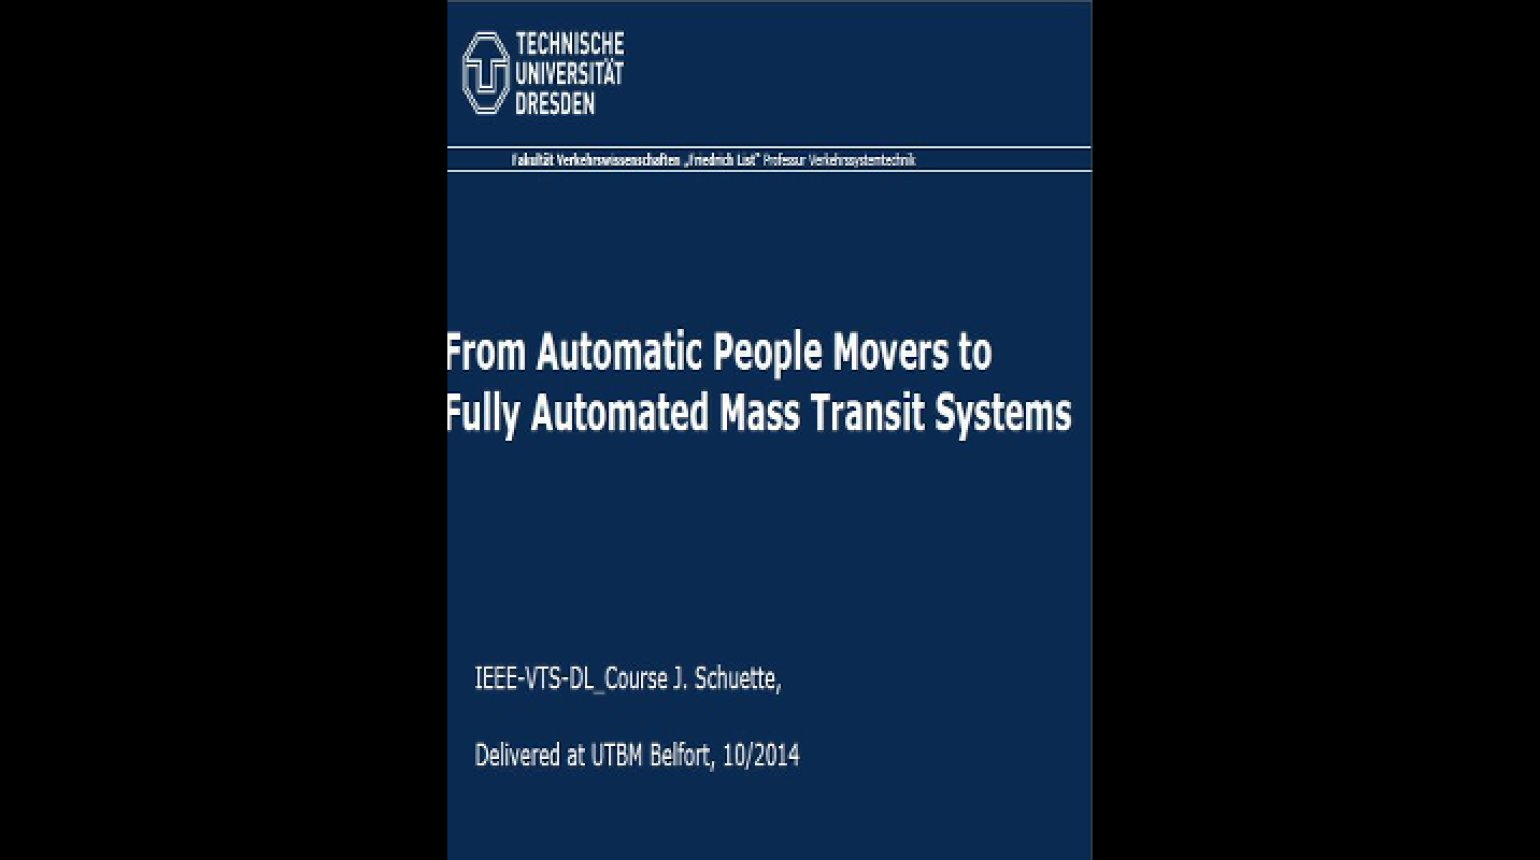 Video - From Automatic People Movers to Fully Automated Mass Transit Systems